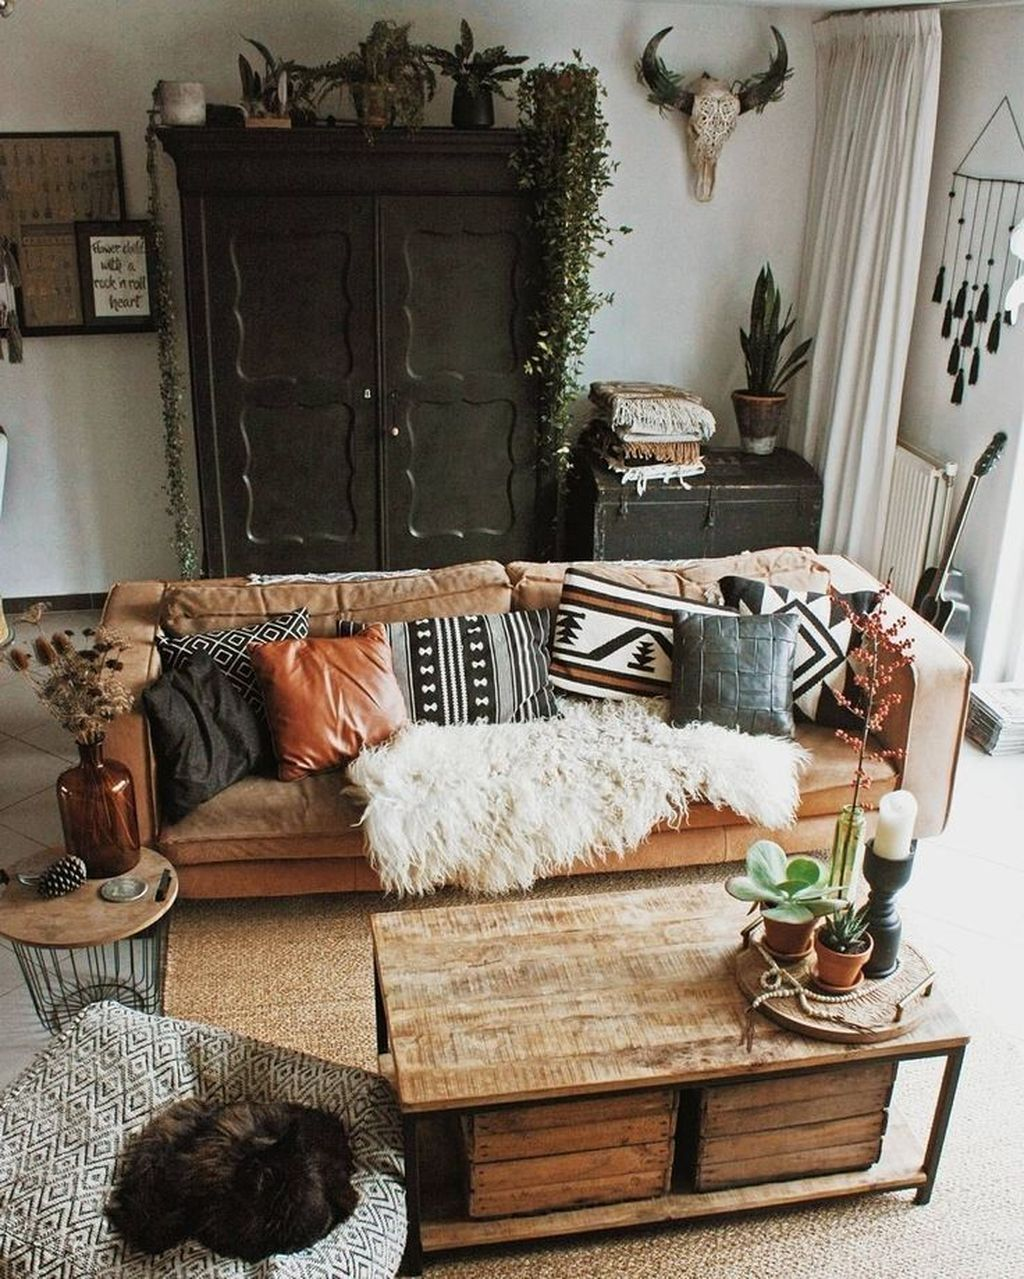 51 cute bohemian style decorating ideas for new and reliable inspirations in 2020 boho living on boho chic decor living room bohemian kitchen id=36797